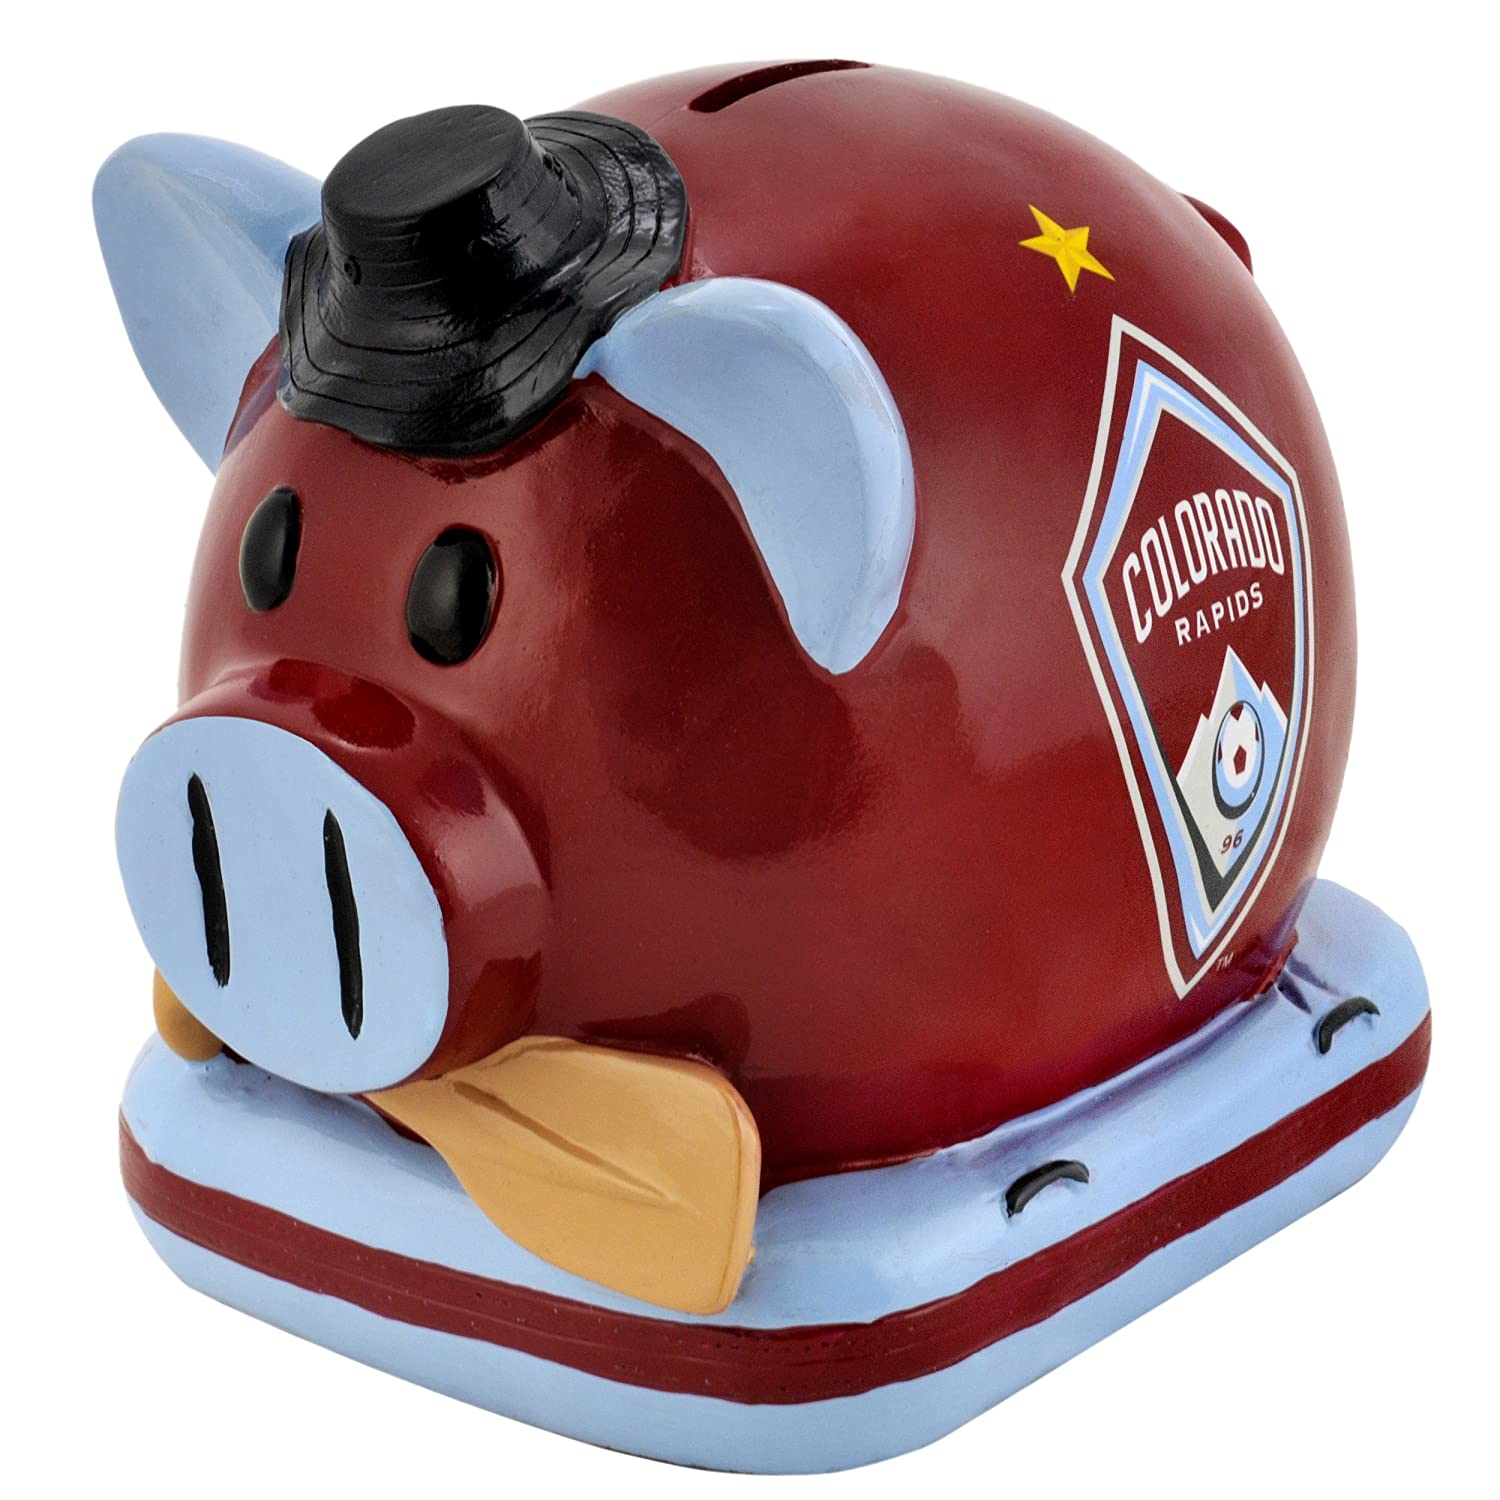 MLS Colorado Rapids Resin Large Thematic Piggy Bank   B0075K02JC